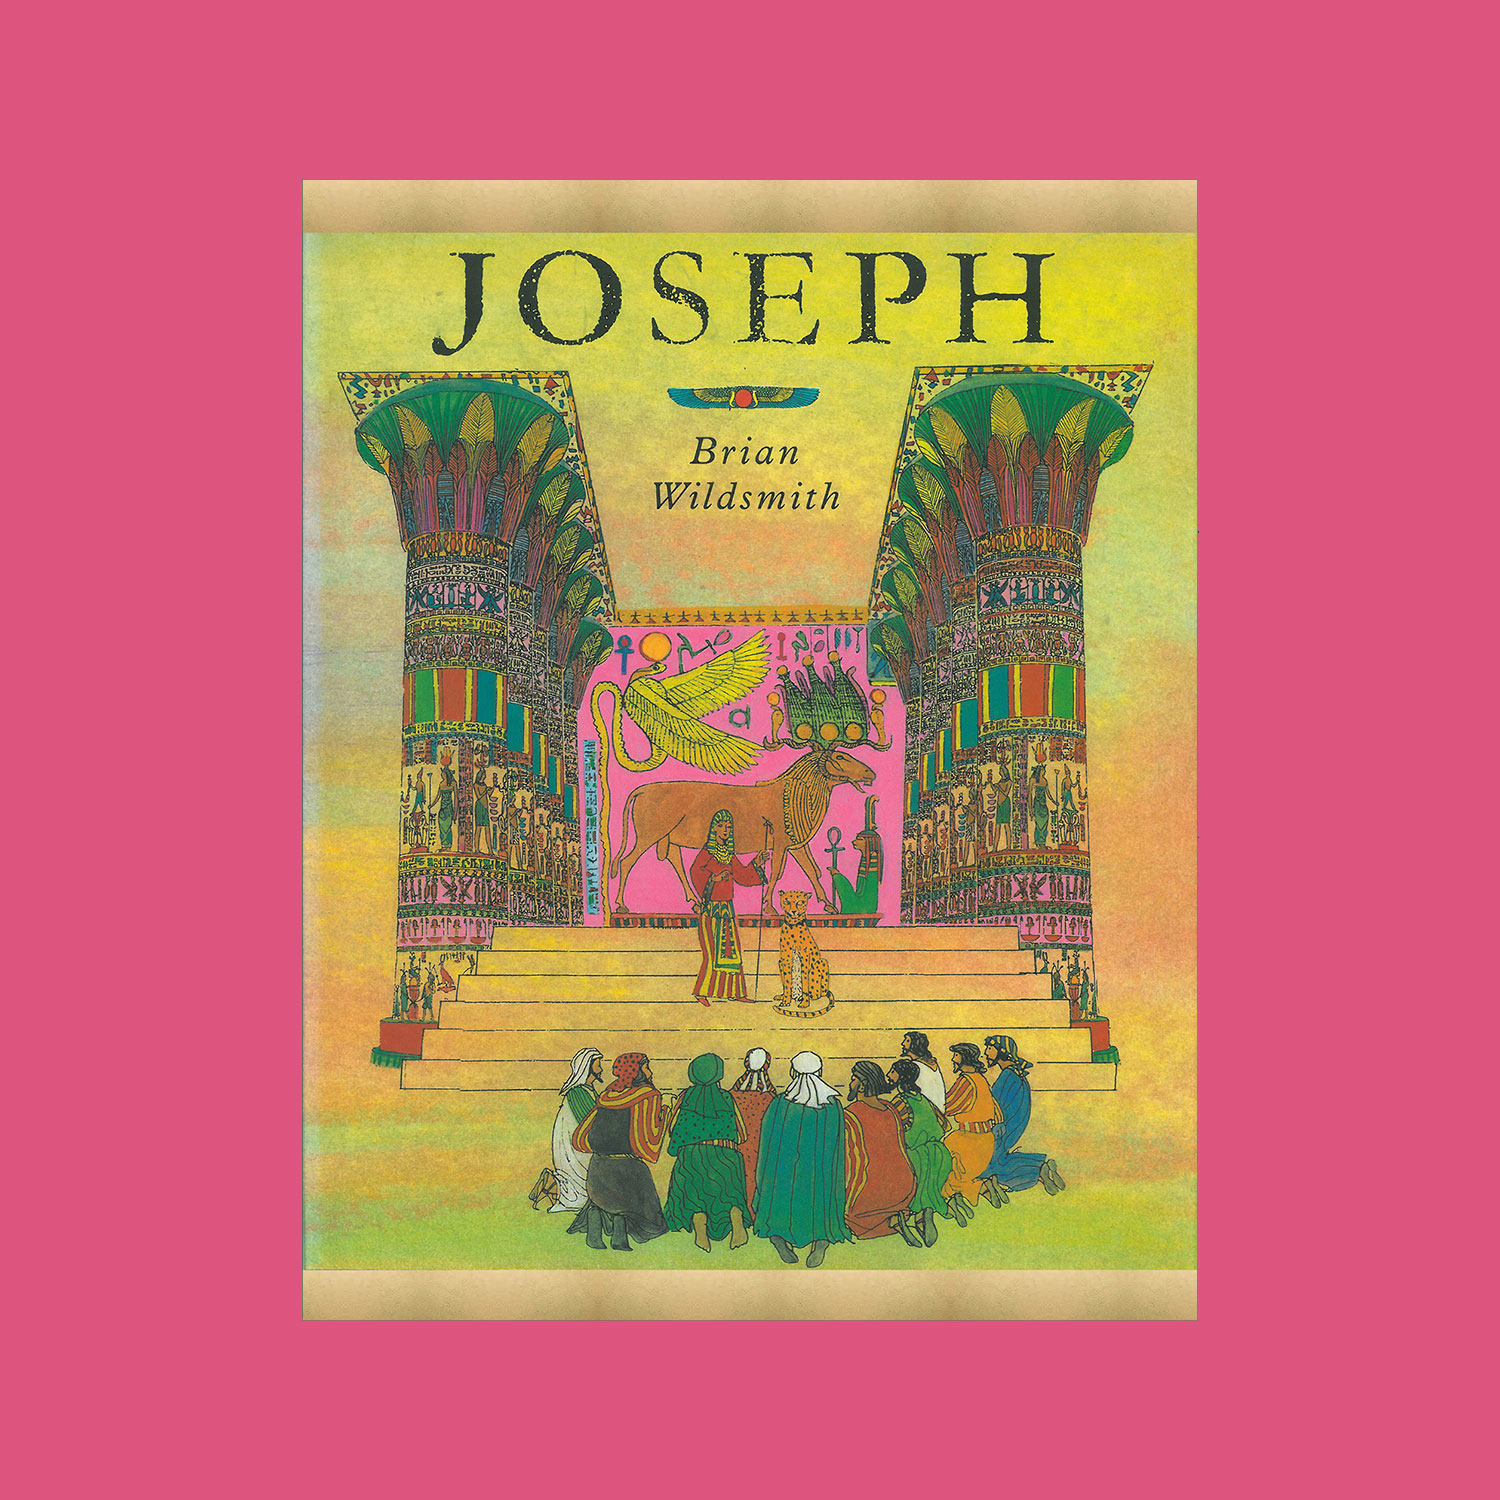 """JOSEPH - 1996""""A retelling of the Old Testament story of Joseph whose jealous brothers sold him as a slave into Egypt. Wildsmith's ink and colour artwork has never seemed more polished, his colourings more carefully shaded… he slao uses the Egyptian setting of Pharaoh's court to beautiful effect, making it come alive with pyramids, hieroglyphic-encrusted walls and spires climbing to the sky. The gilt edging of the pages also gives the book the glow of majesty…""""Ileen Cooper, Booklist""""Perhaps the most beautifully illustrated of this year's picture books is Joseph...It is enriched by spectacular pictures of Egypt.""""The Spectator"""